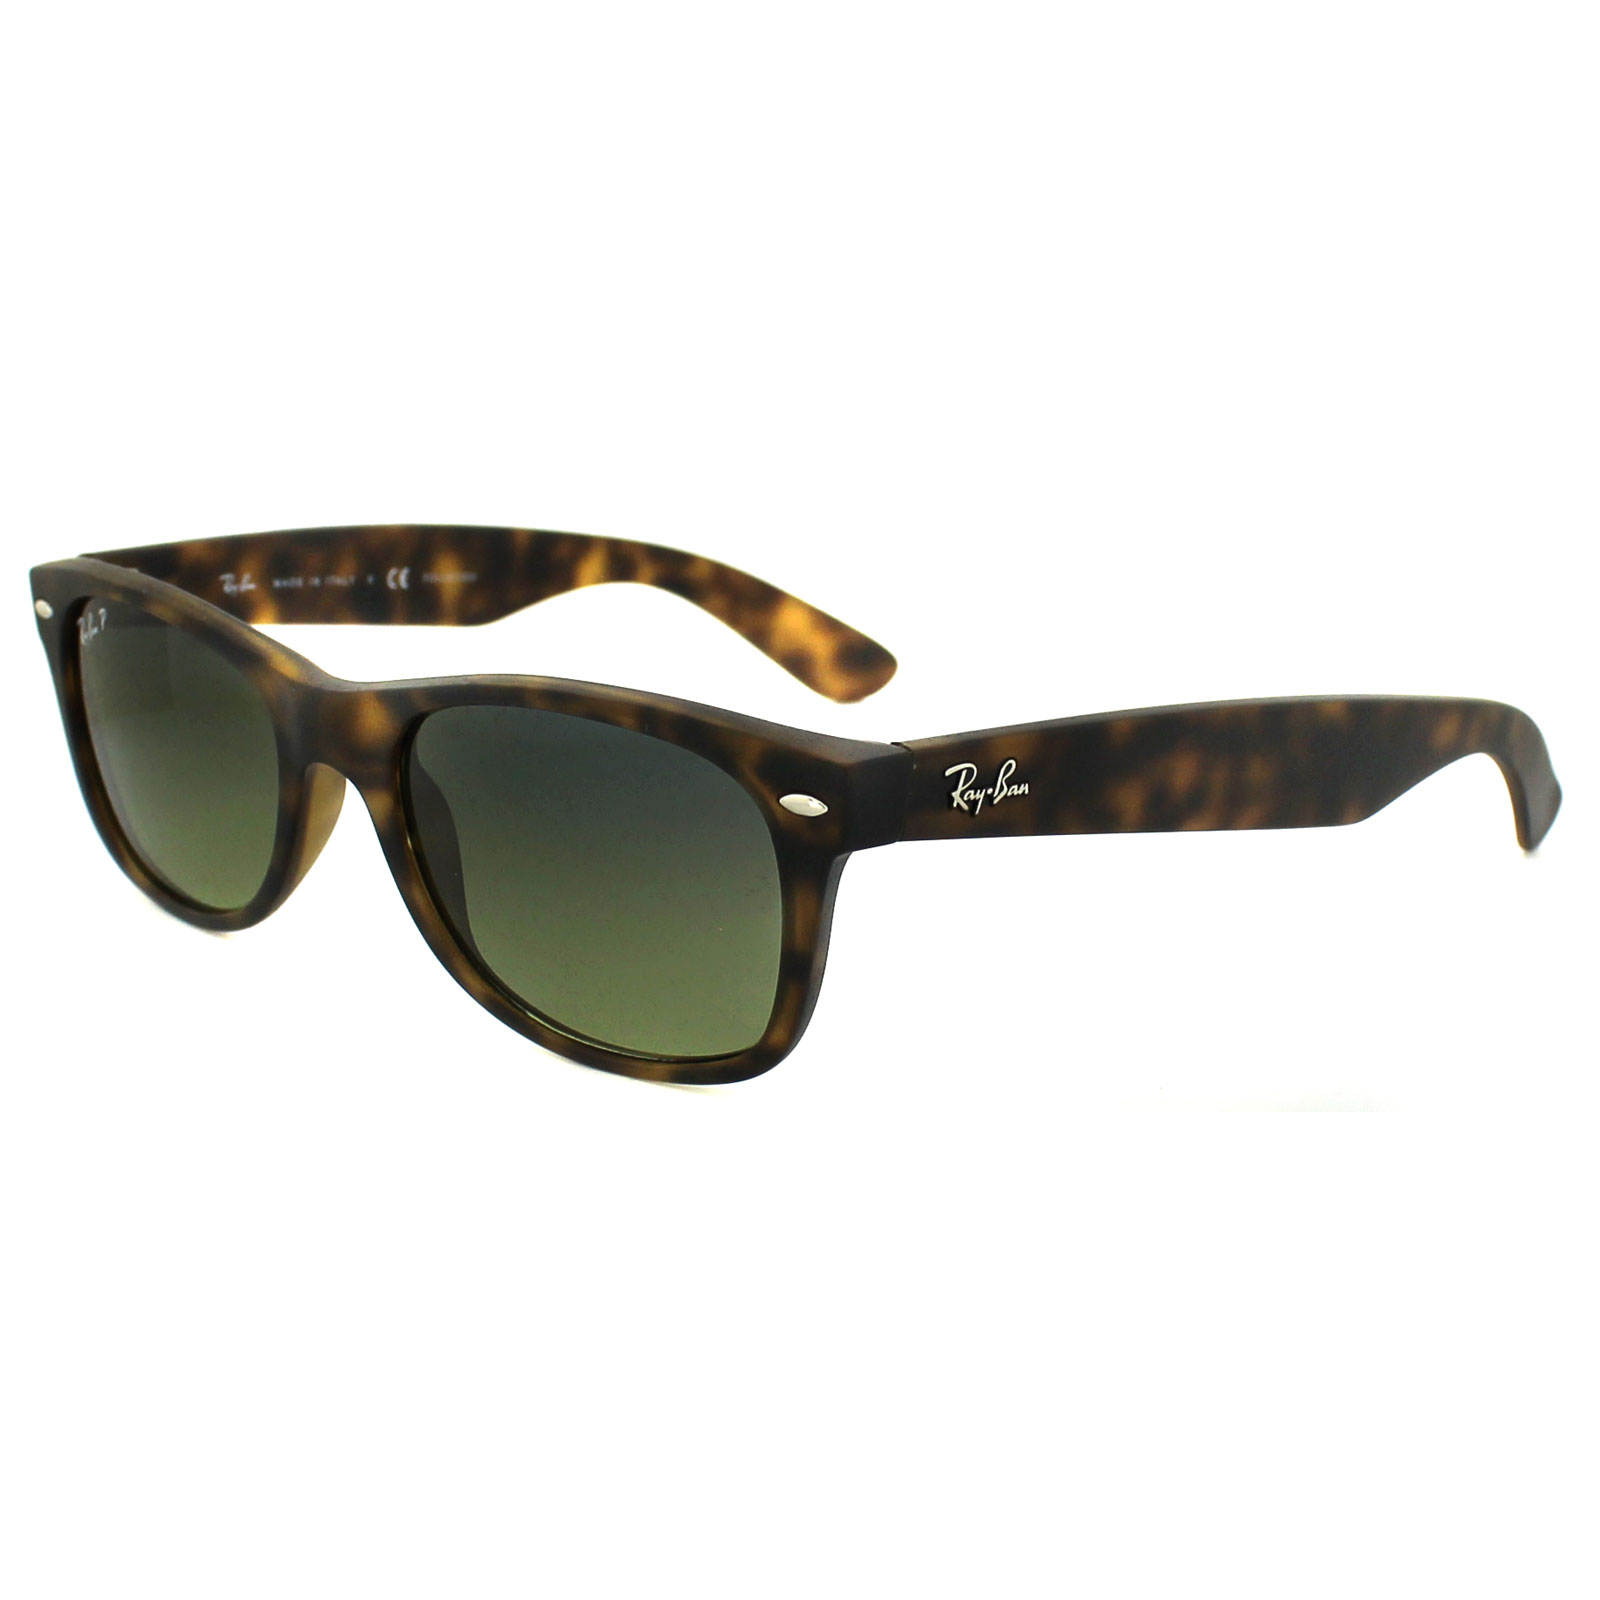 Ray Ban RB2132 894/76 Gr.52mm 1 9LgcRBWoM